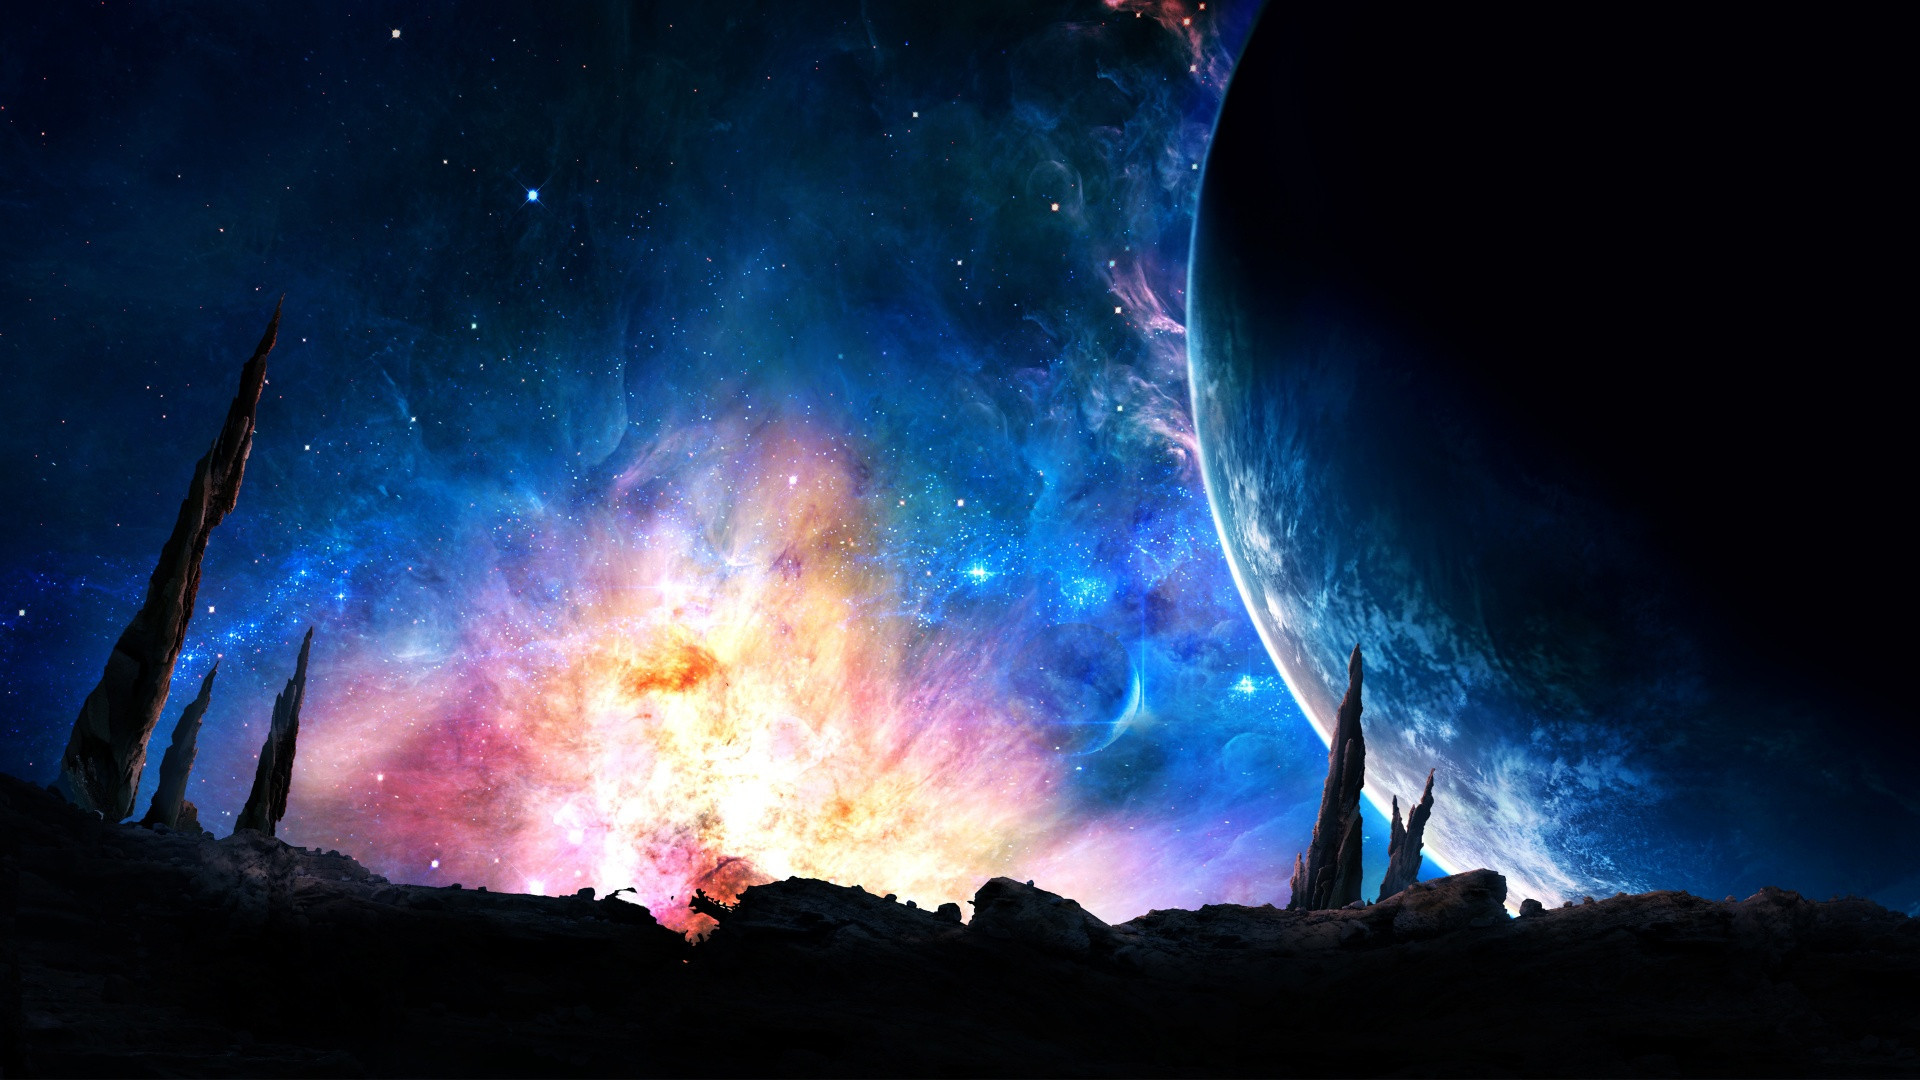 200 Seperate Nature/Space Themed Wallpapers [1920×1080] Need #iPhone #6S #